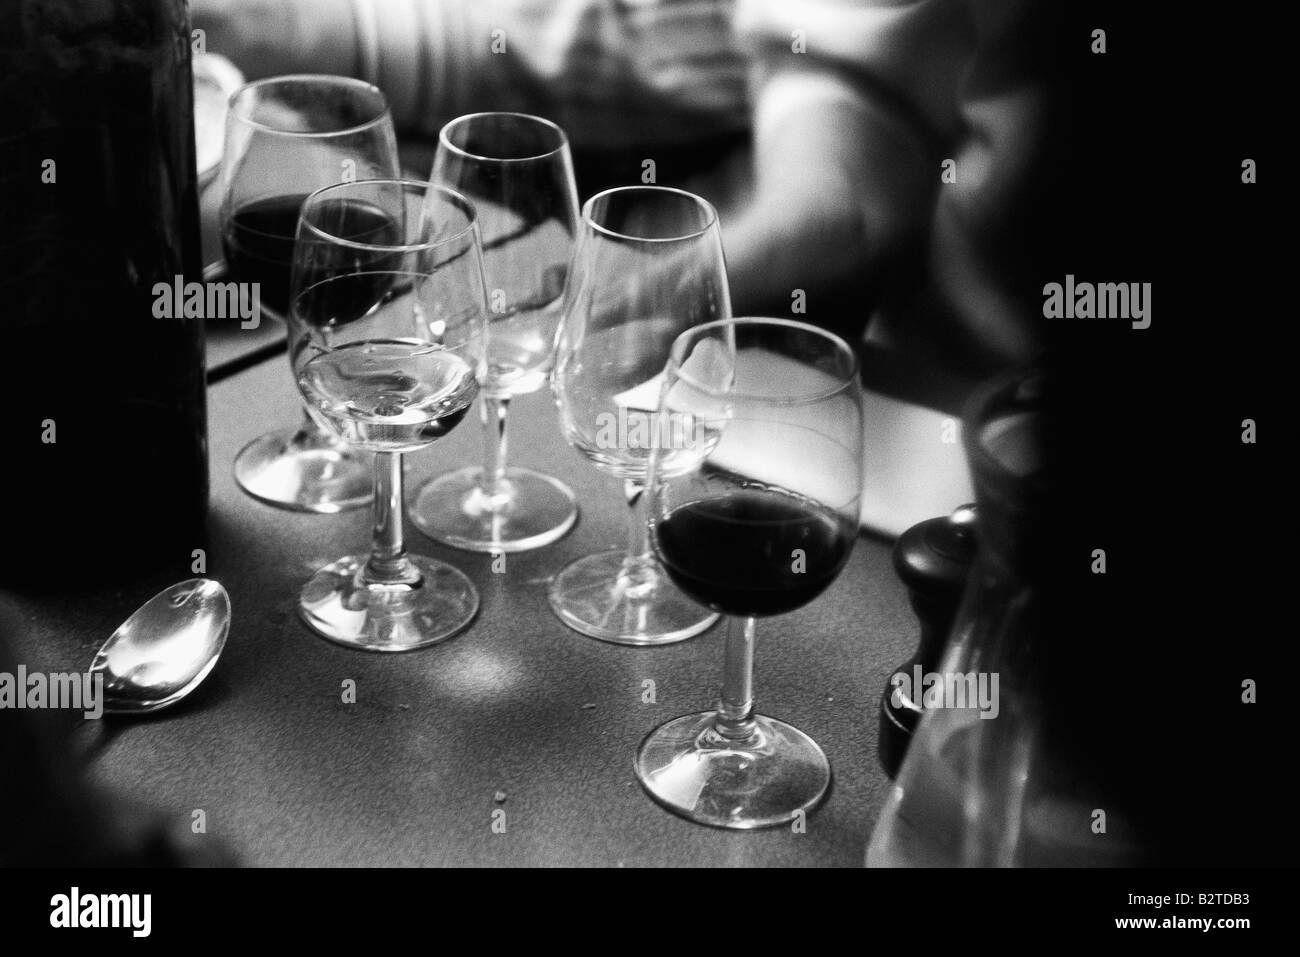 Wine glasses on counter, some empty - Stock Image